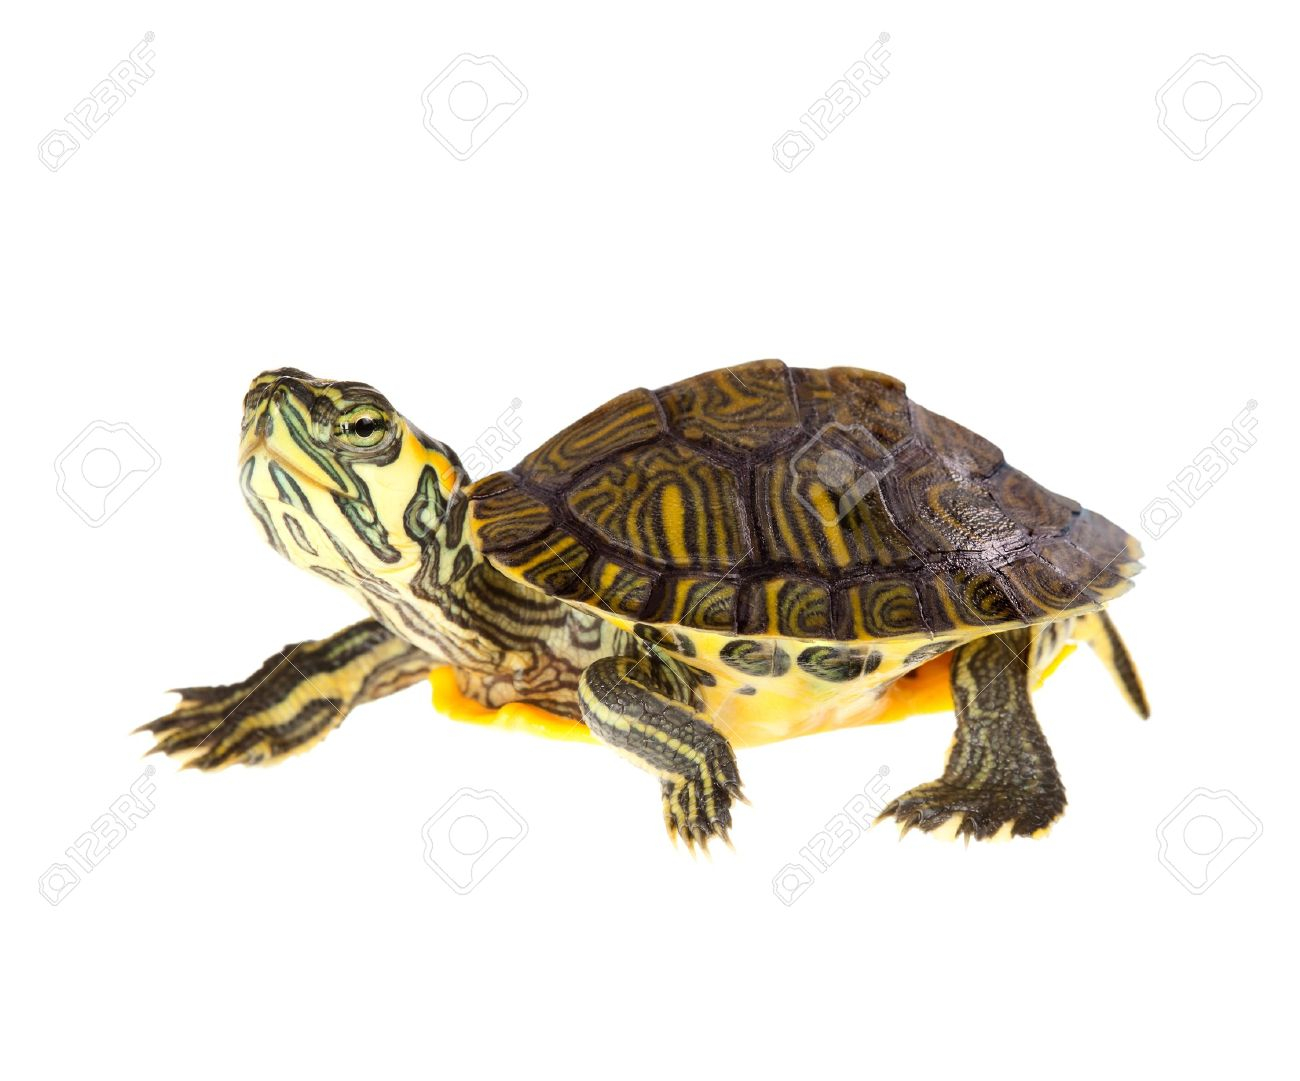 Slow Turtle Funny Slow Turtle Funny Green